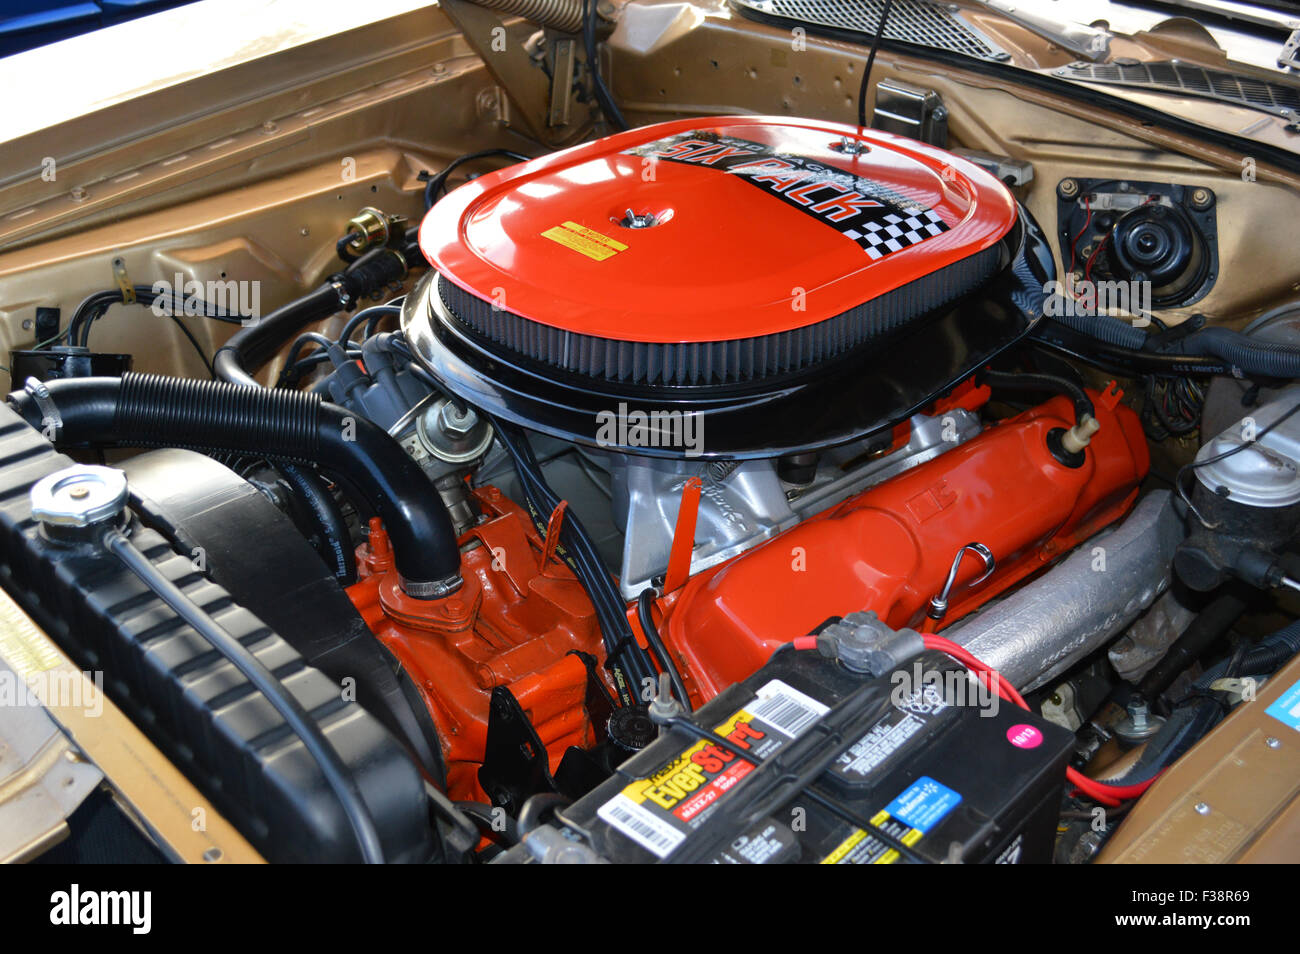 A Dodge 440 Six Pack Engine On Display At A Car Show Stock